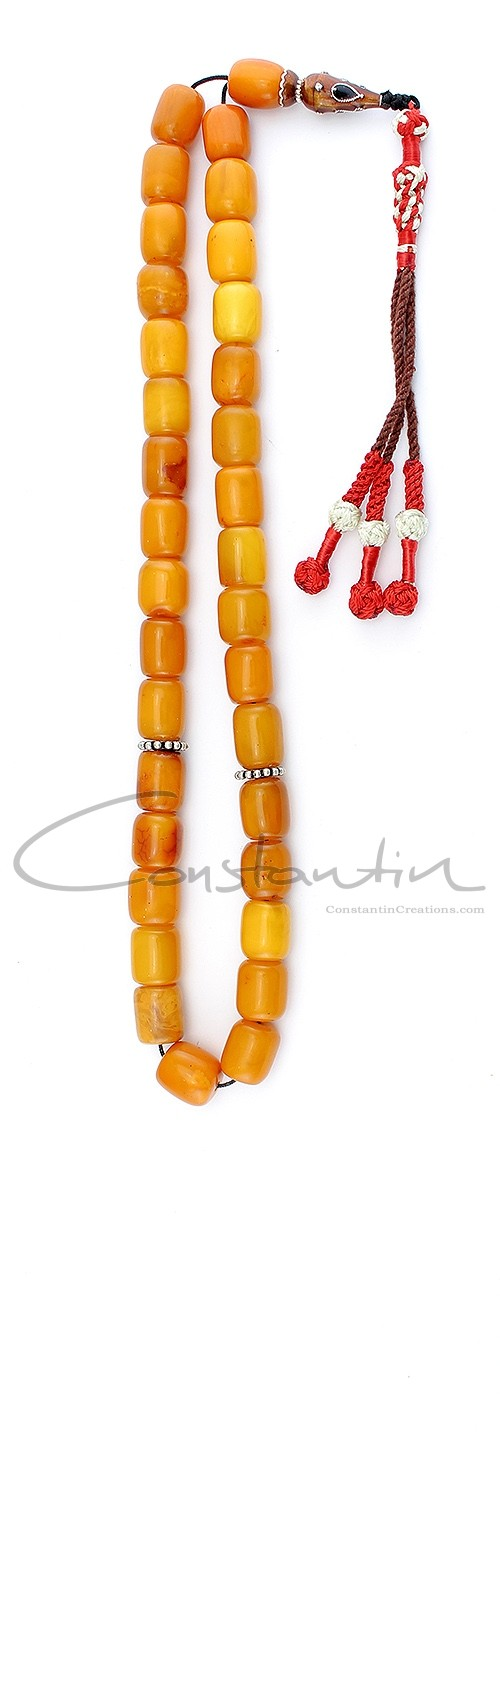 Premium quality Worry beads set made of natural amber and enamel decorated silver.